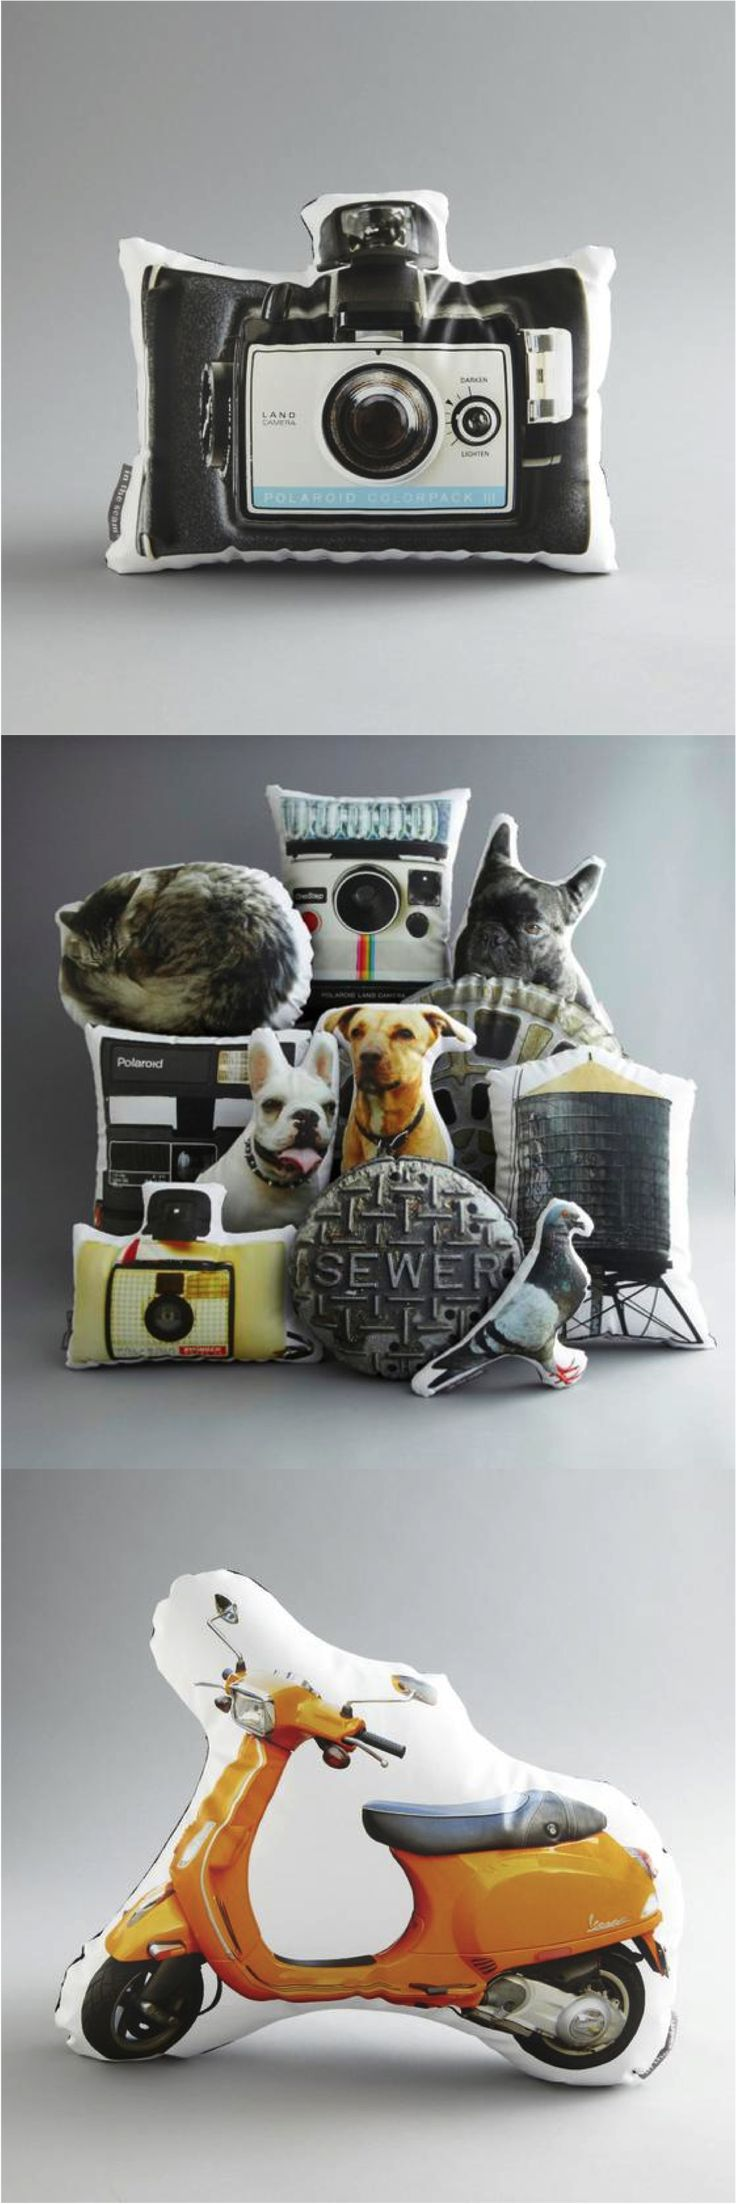 If it can be photographed, it can be made into an amazing pillow! | Made on Hatch.co